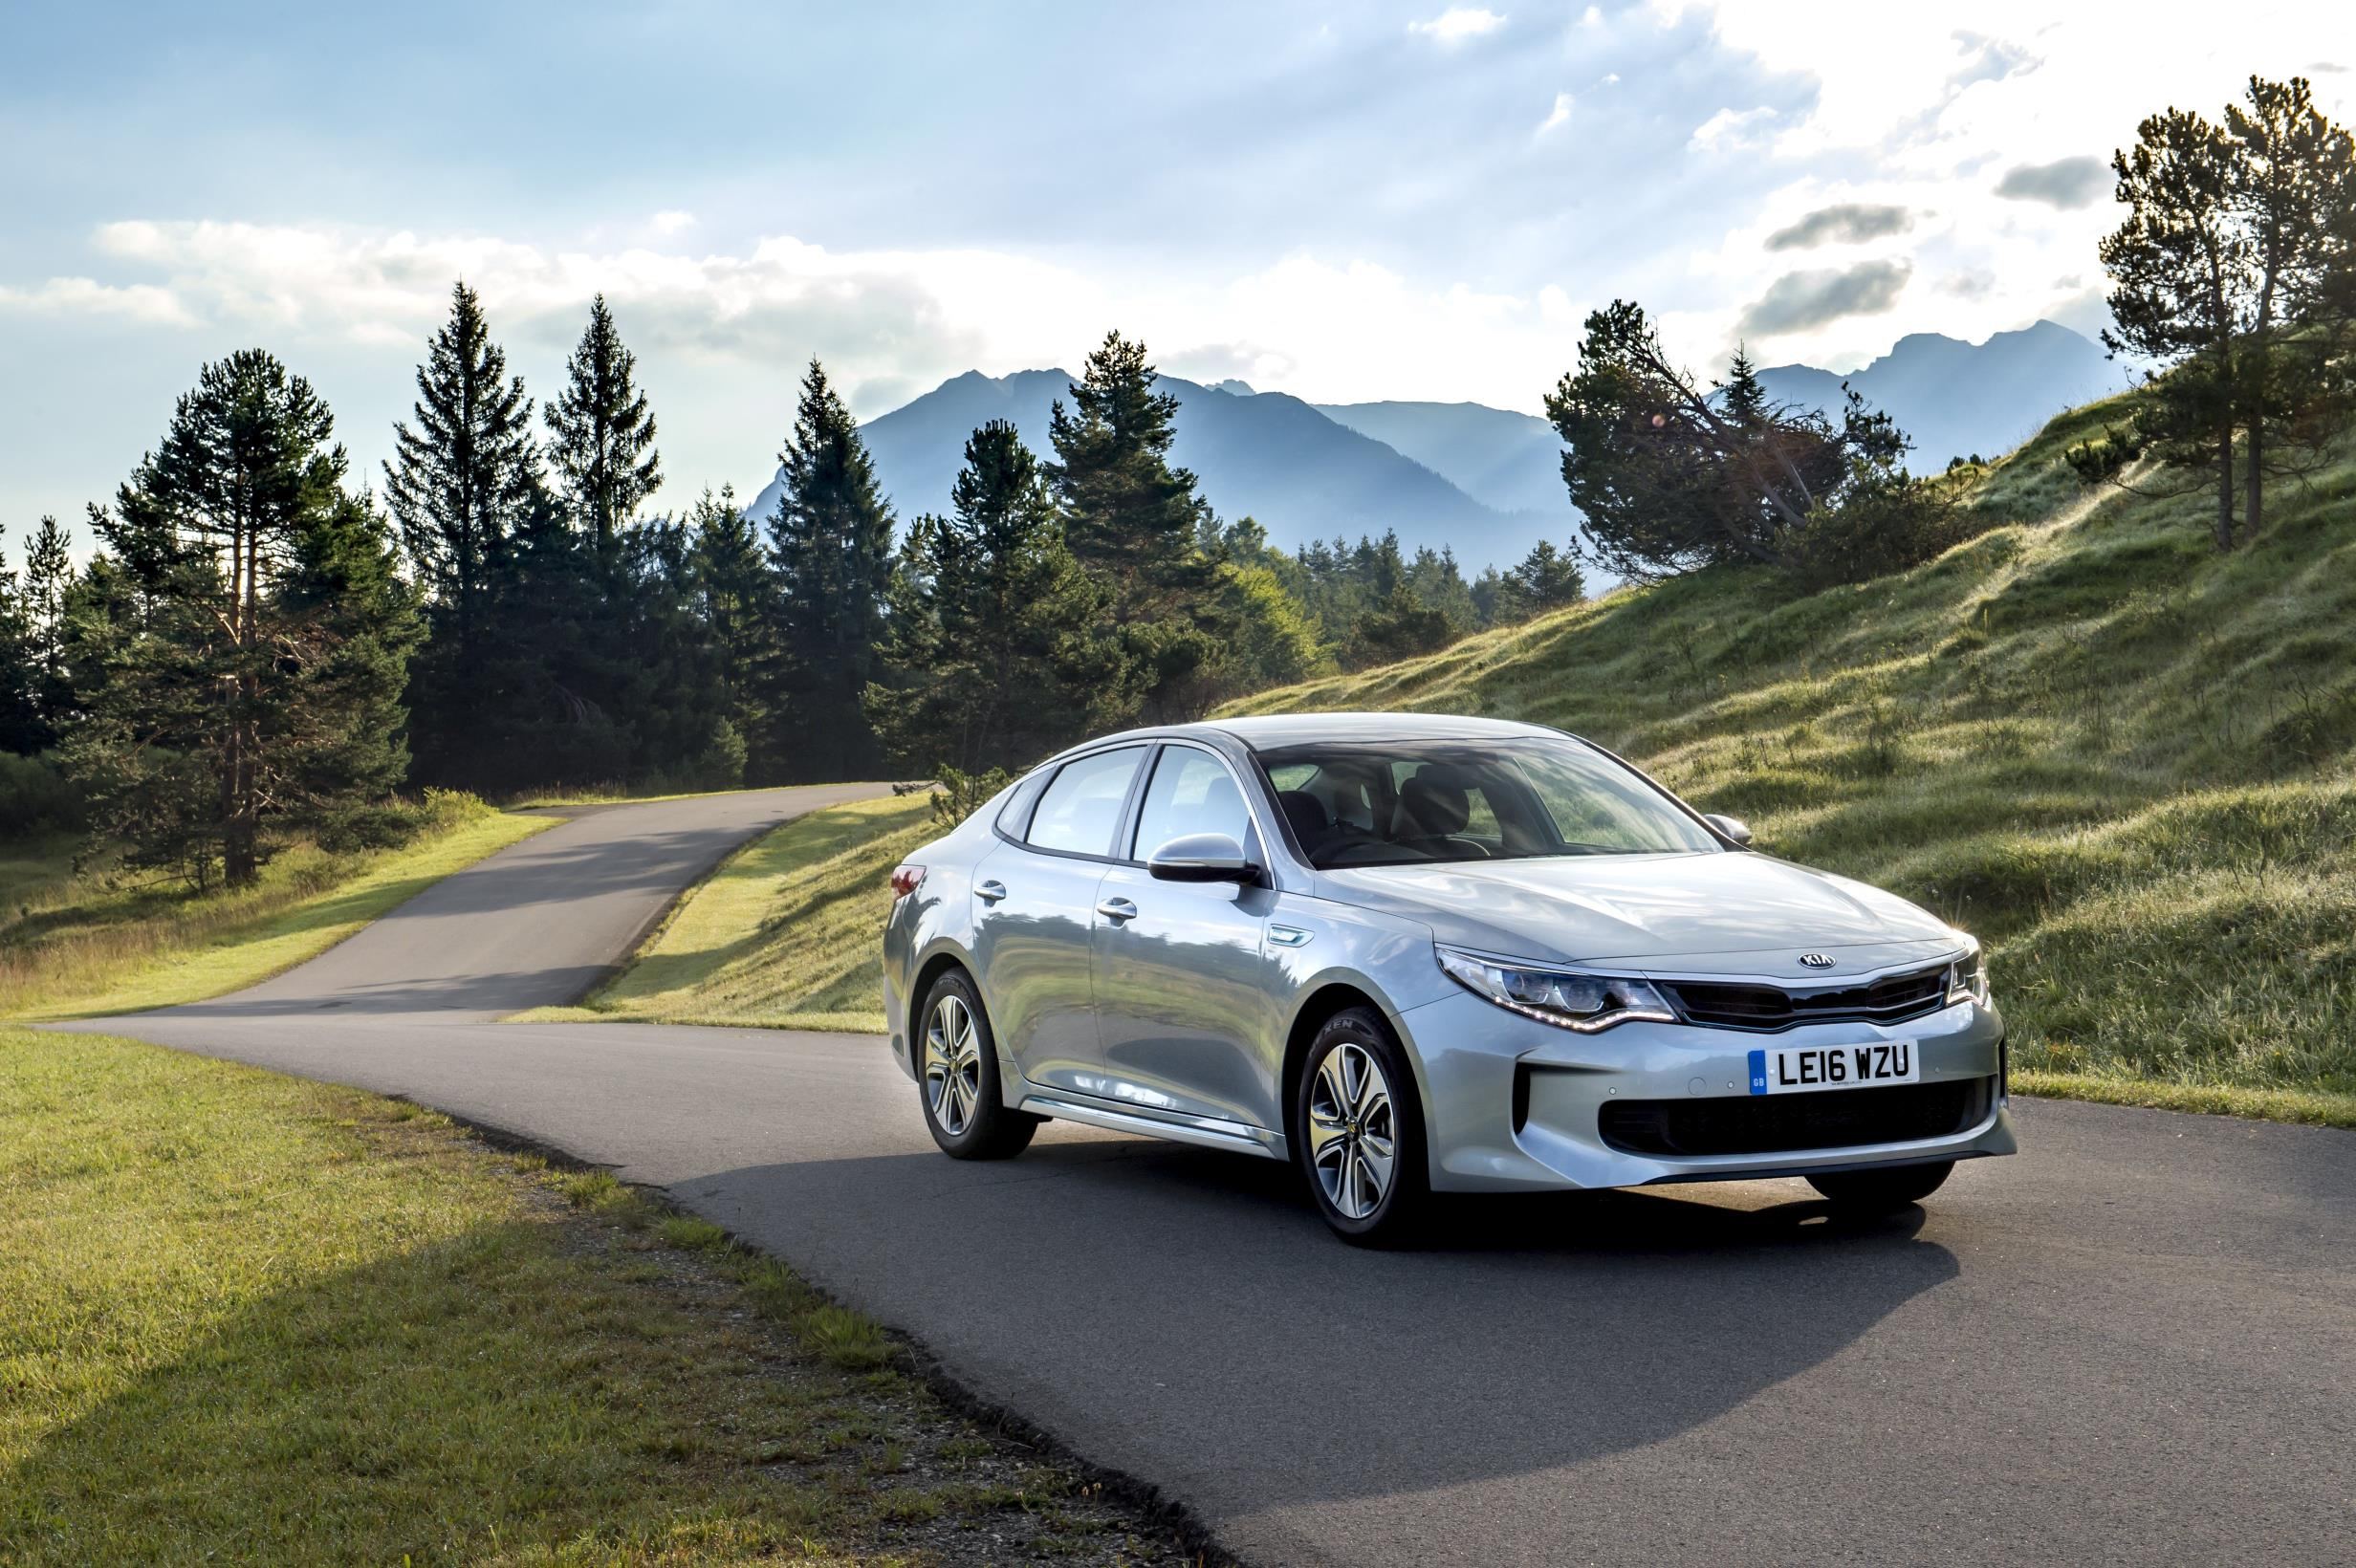 kia uk prices optima sportswagon optima plug in hybrid. Black Bedroom Furniture Sets. Home Design Ideas